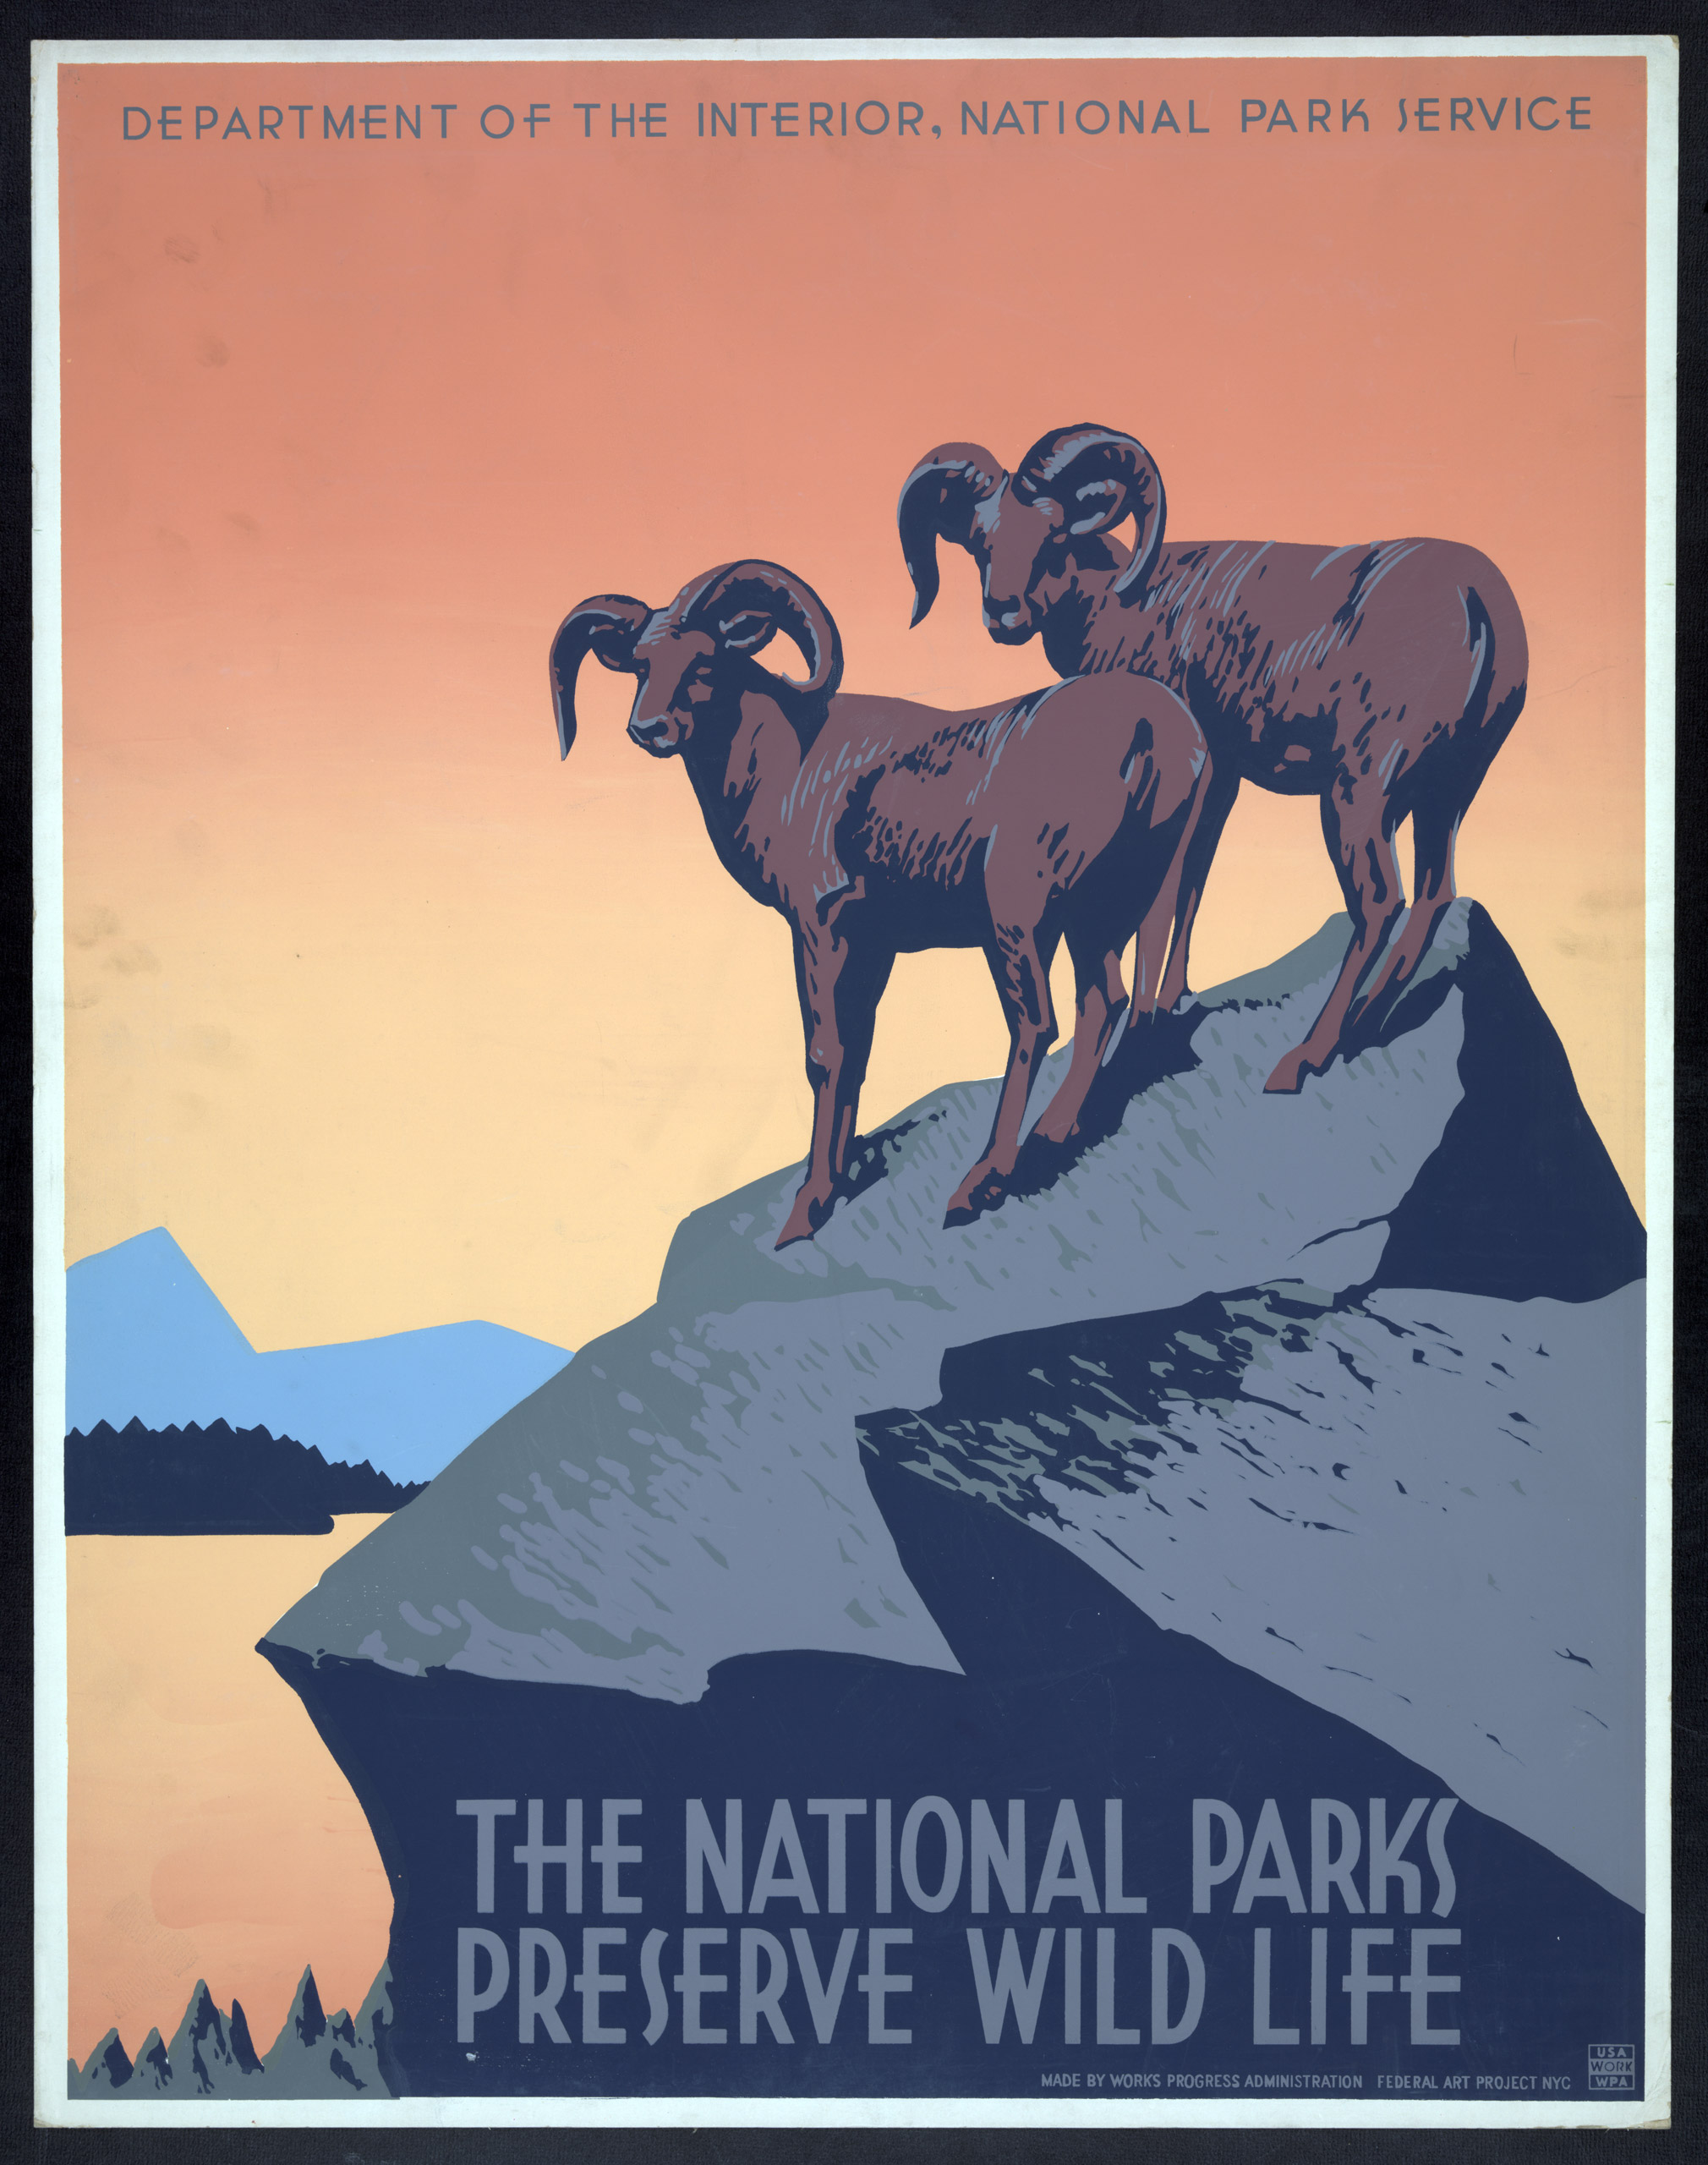 The national parks preserve wild life poster, ca. 1936-1939.